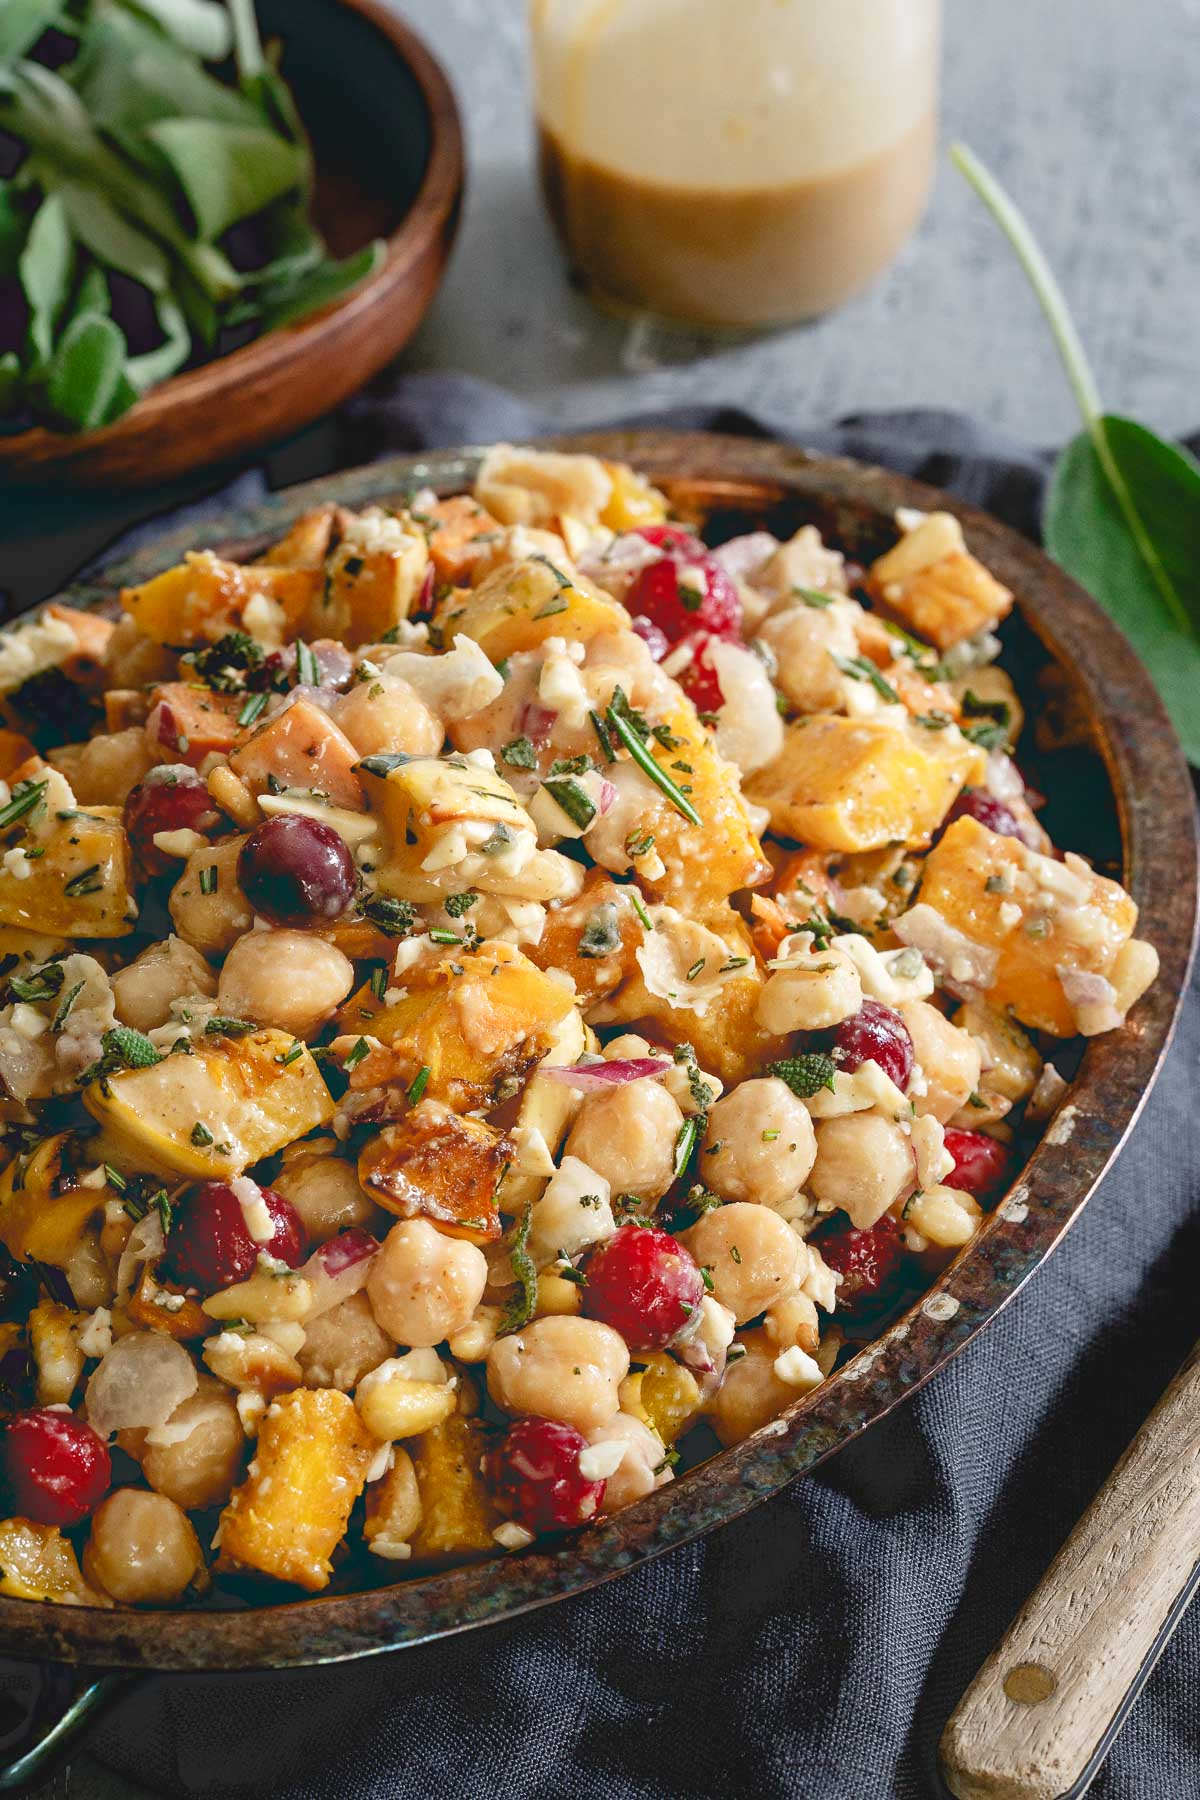 This chickpea fall salad is a hearty vegetarian meal with roasted sweet potatoes, delicata squash, cranberries, feta and a tahini maple dressing.